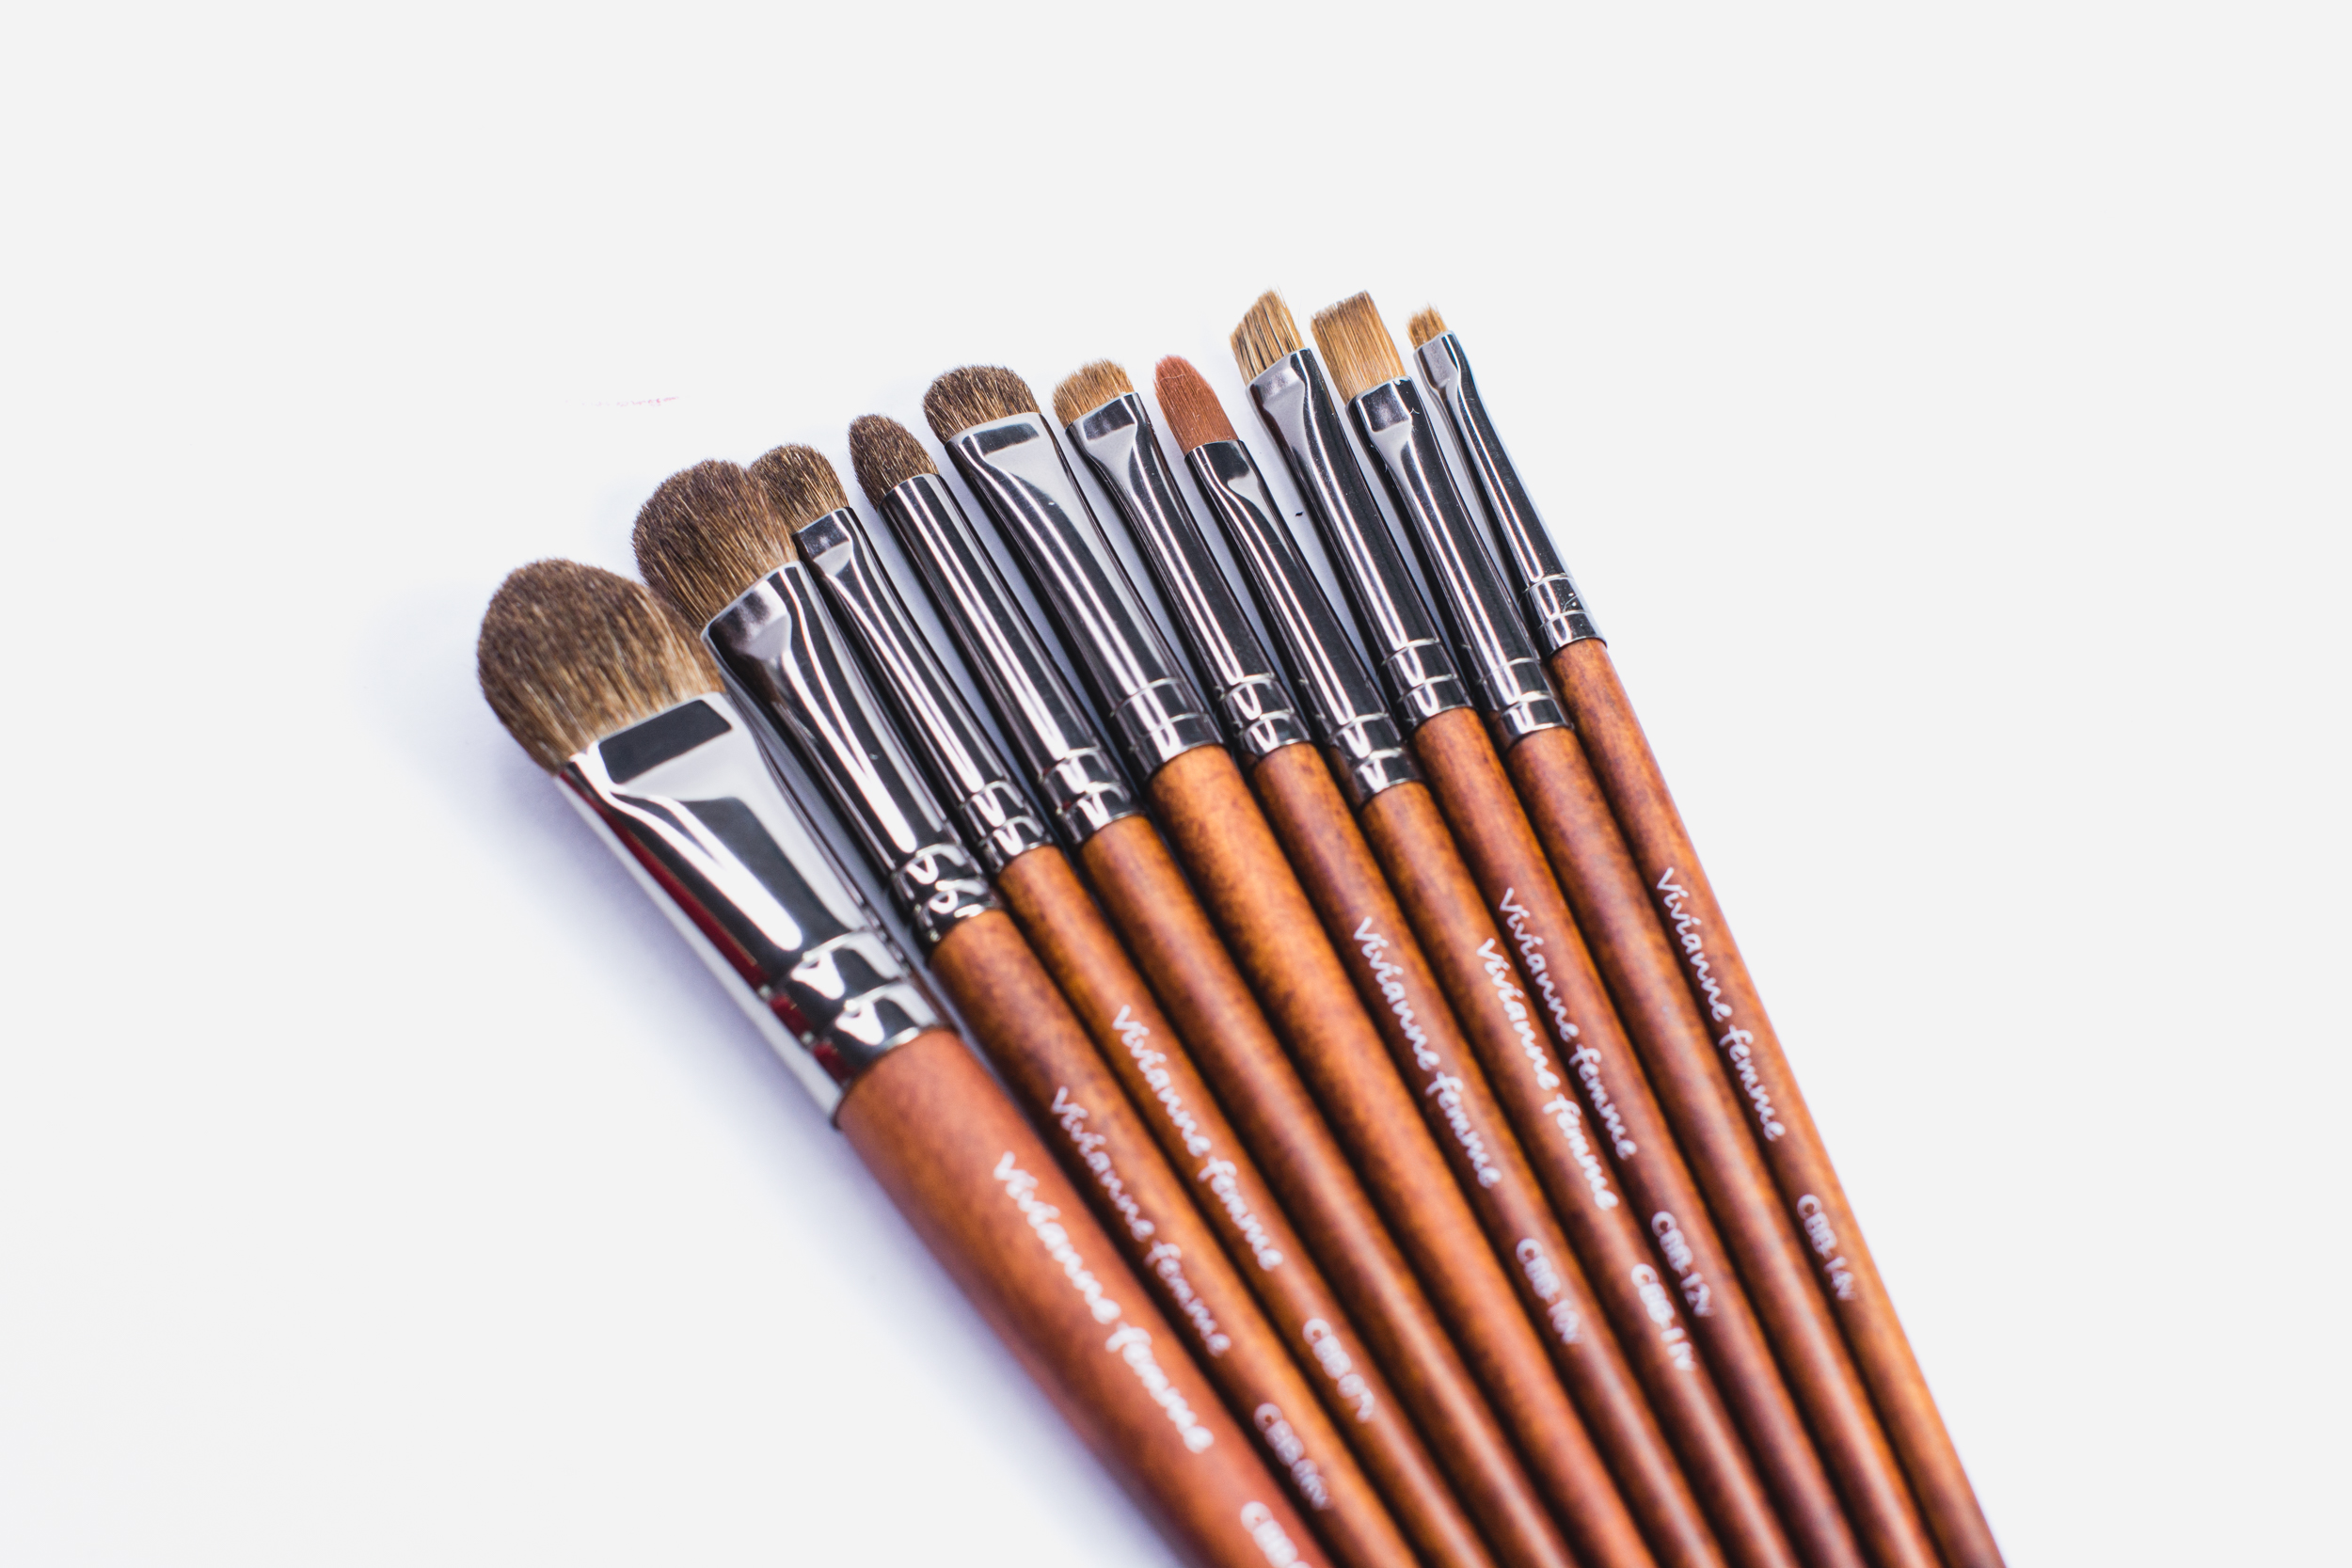 bisyodo_vivianne-femme_face-eye_brush-set_project-vanity-online-shop_2019-88.JPG